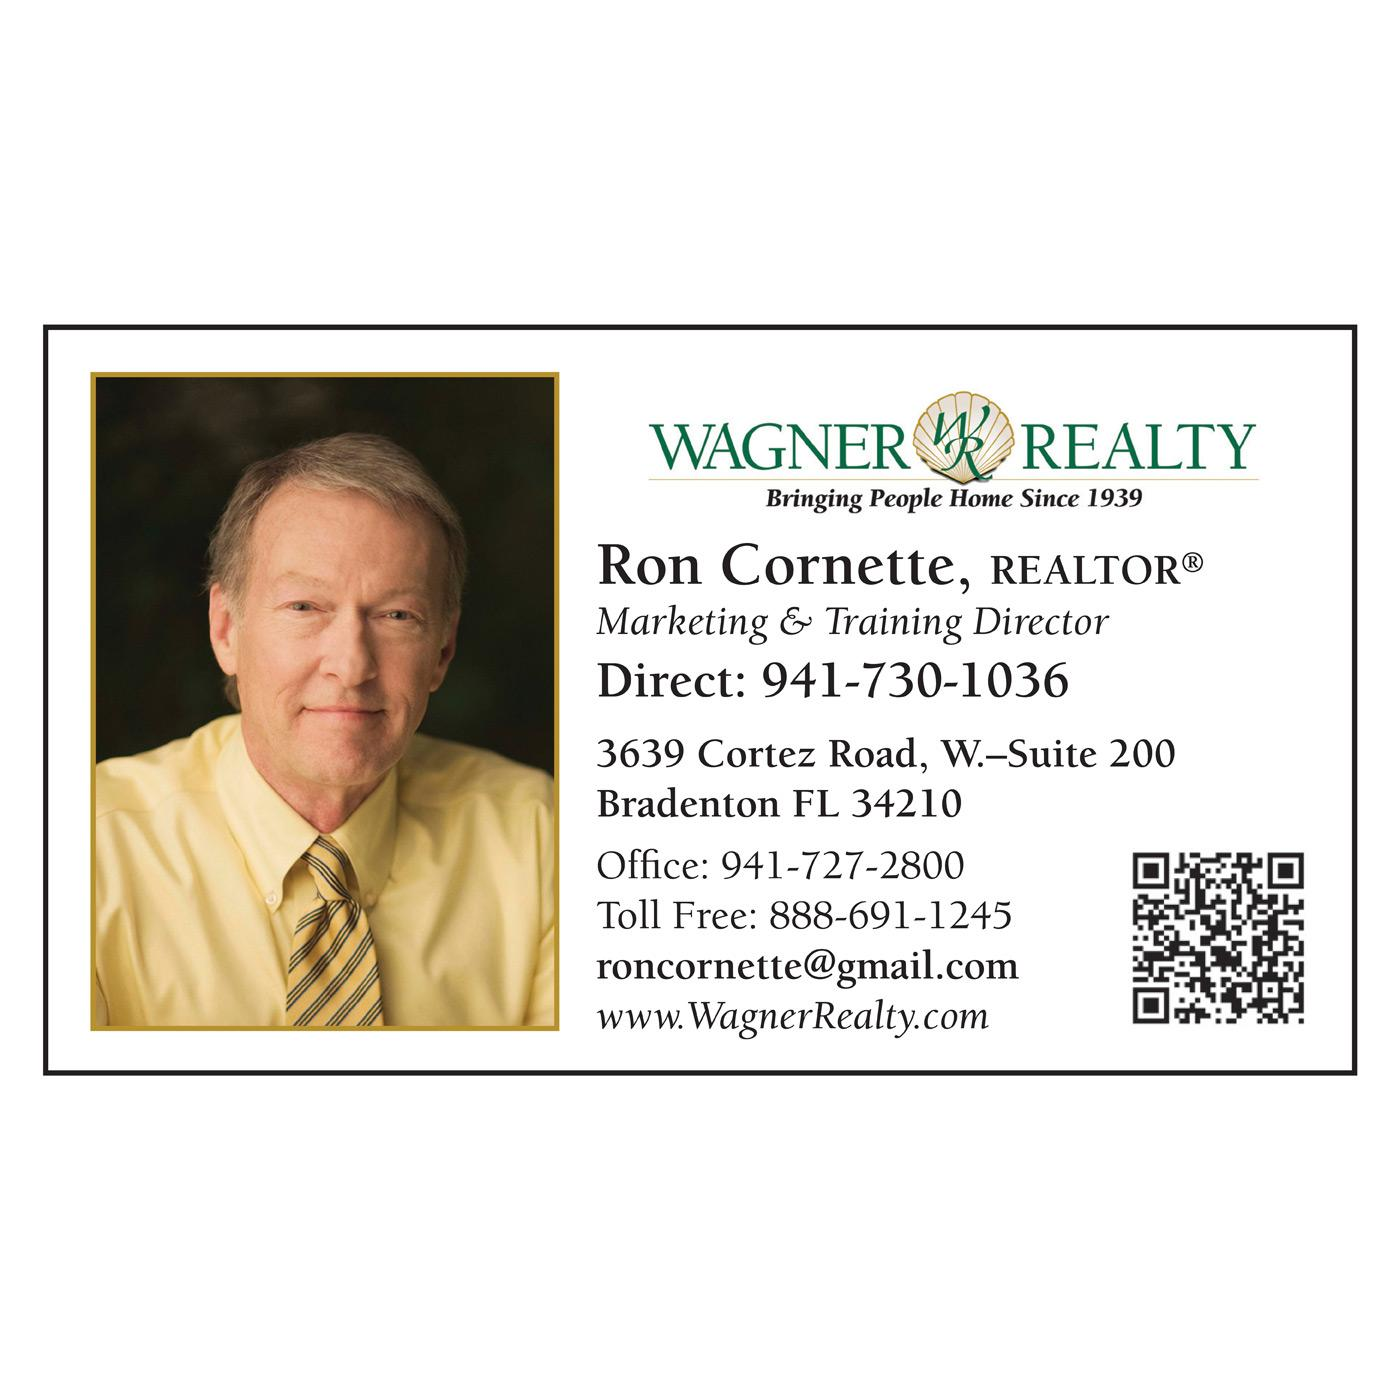 Wagner Realty Paper Business Card